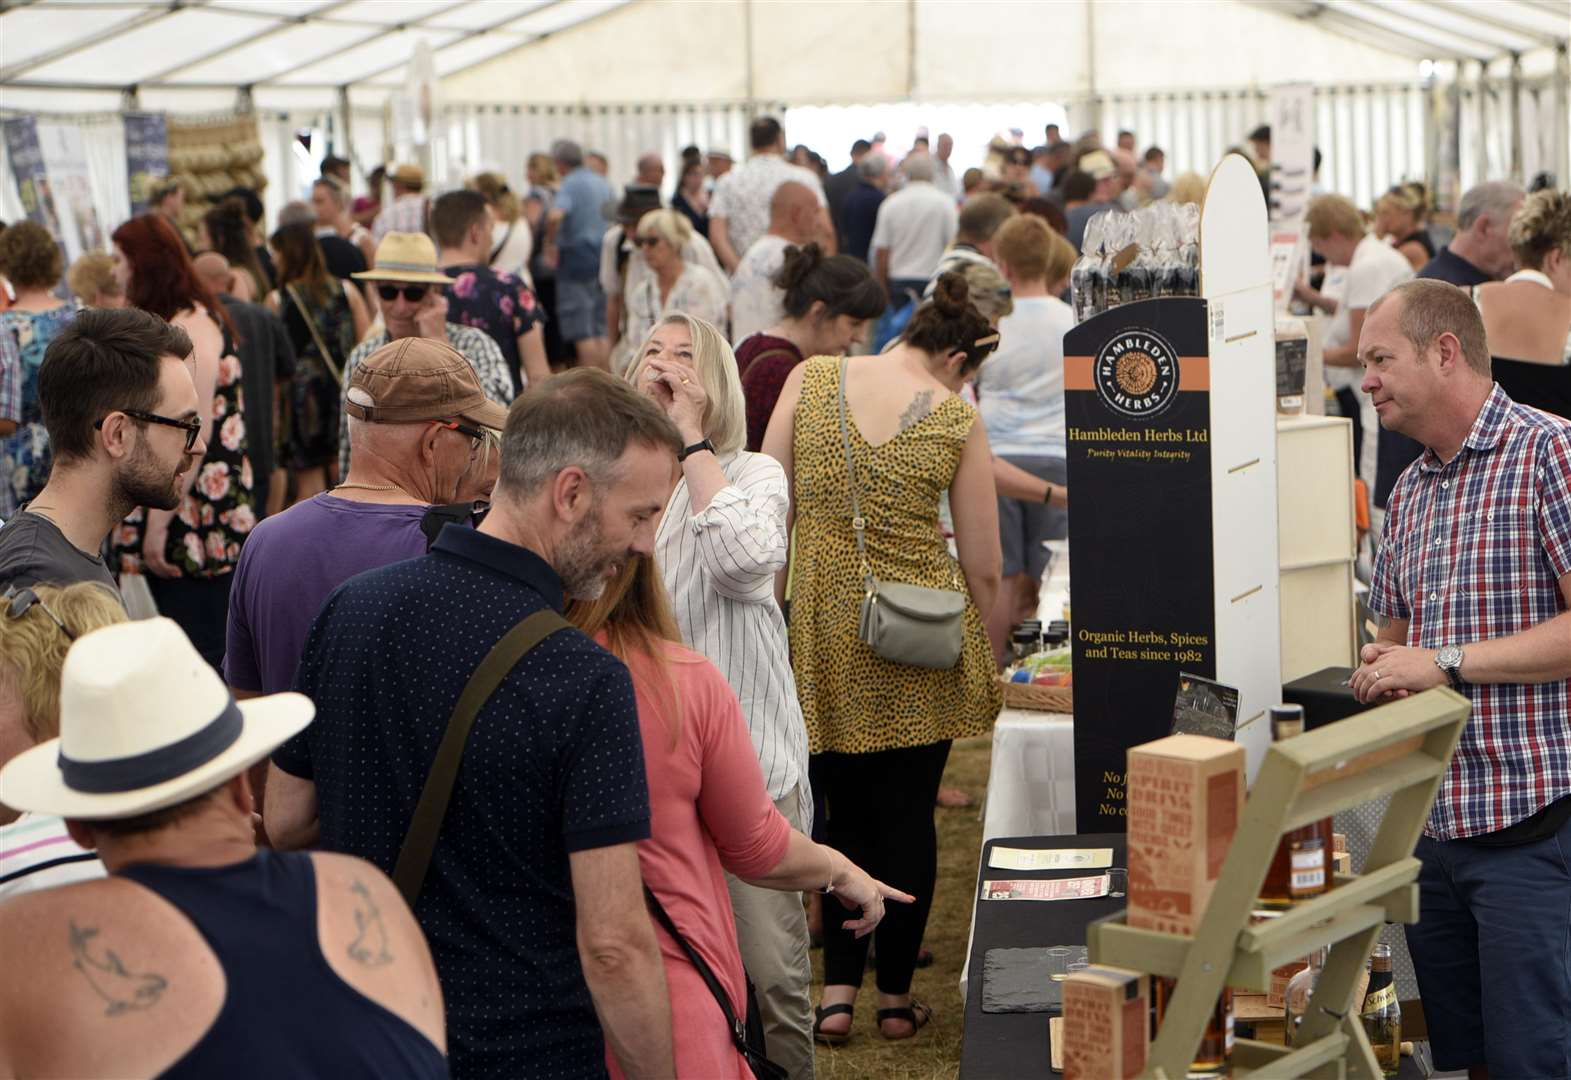 Crowds out in force for Sandringham food festival